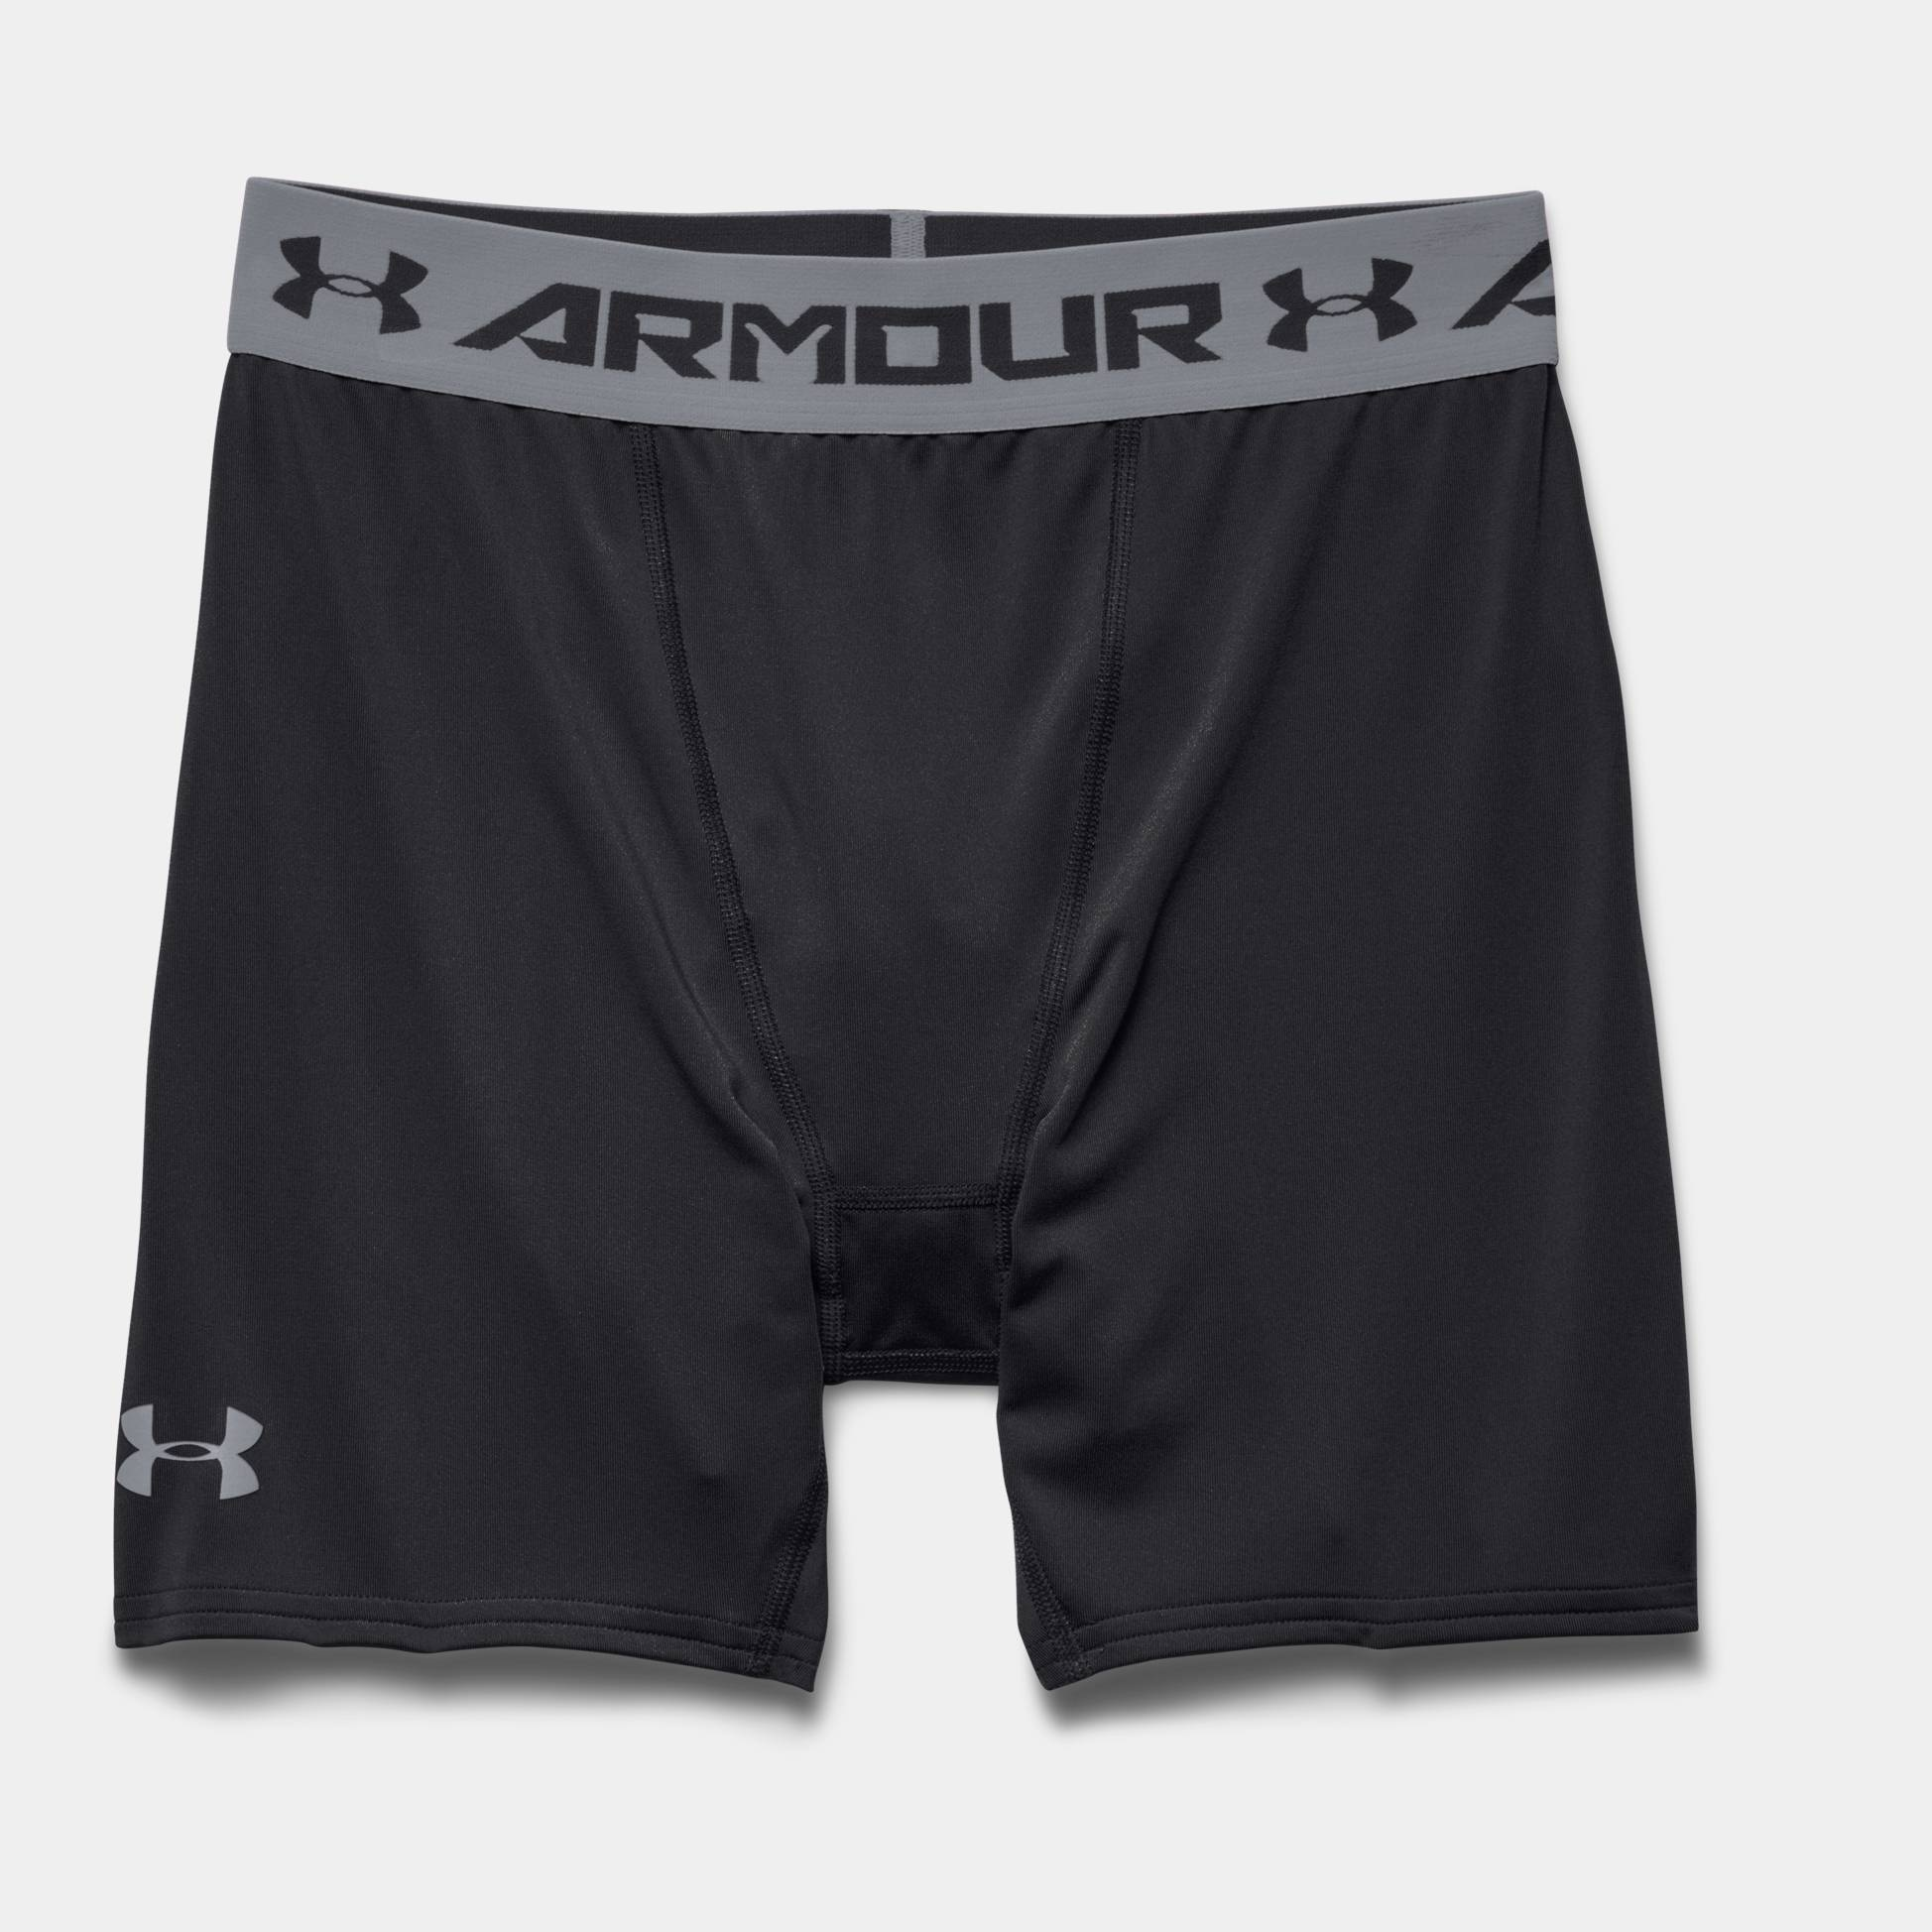 clothing under armour armour compr shorts mid fitness. Black Bedroom Furniture Sets. Home Design Ideas